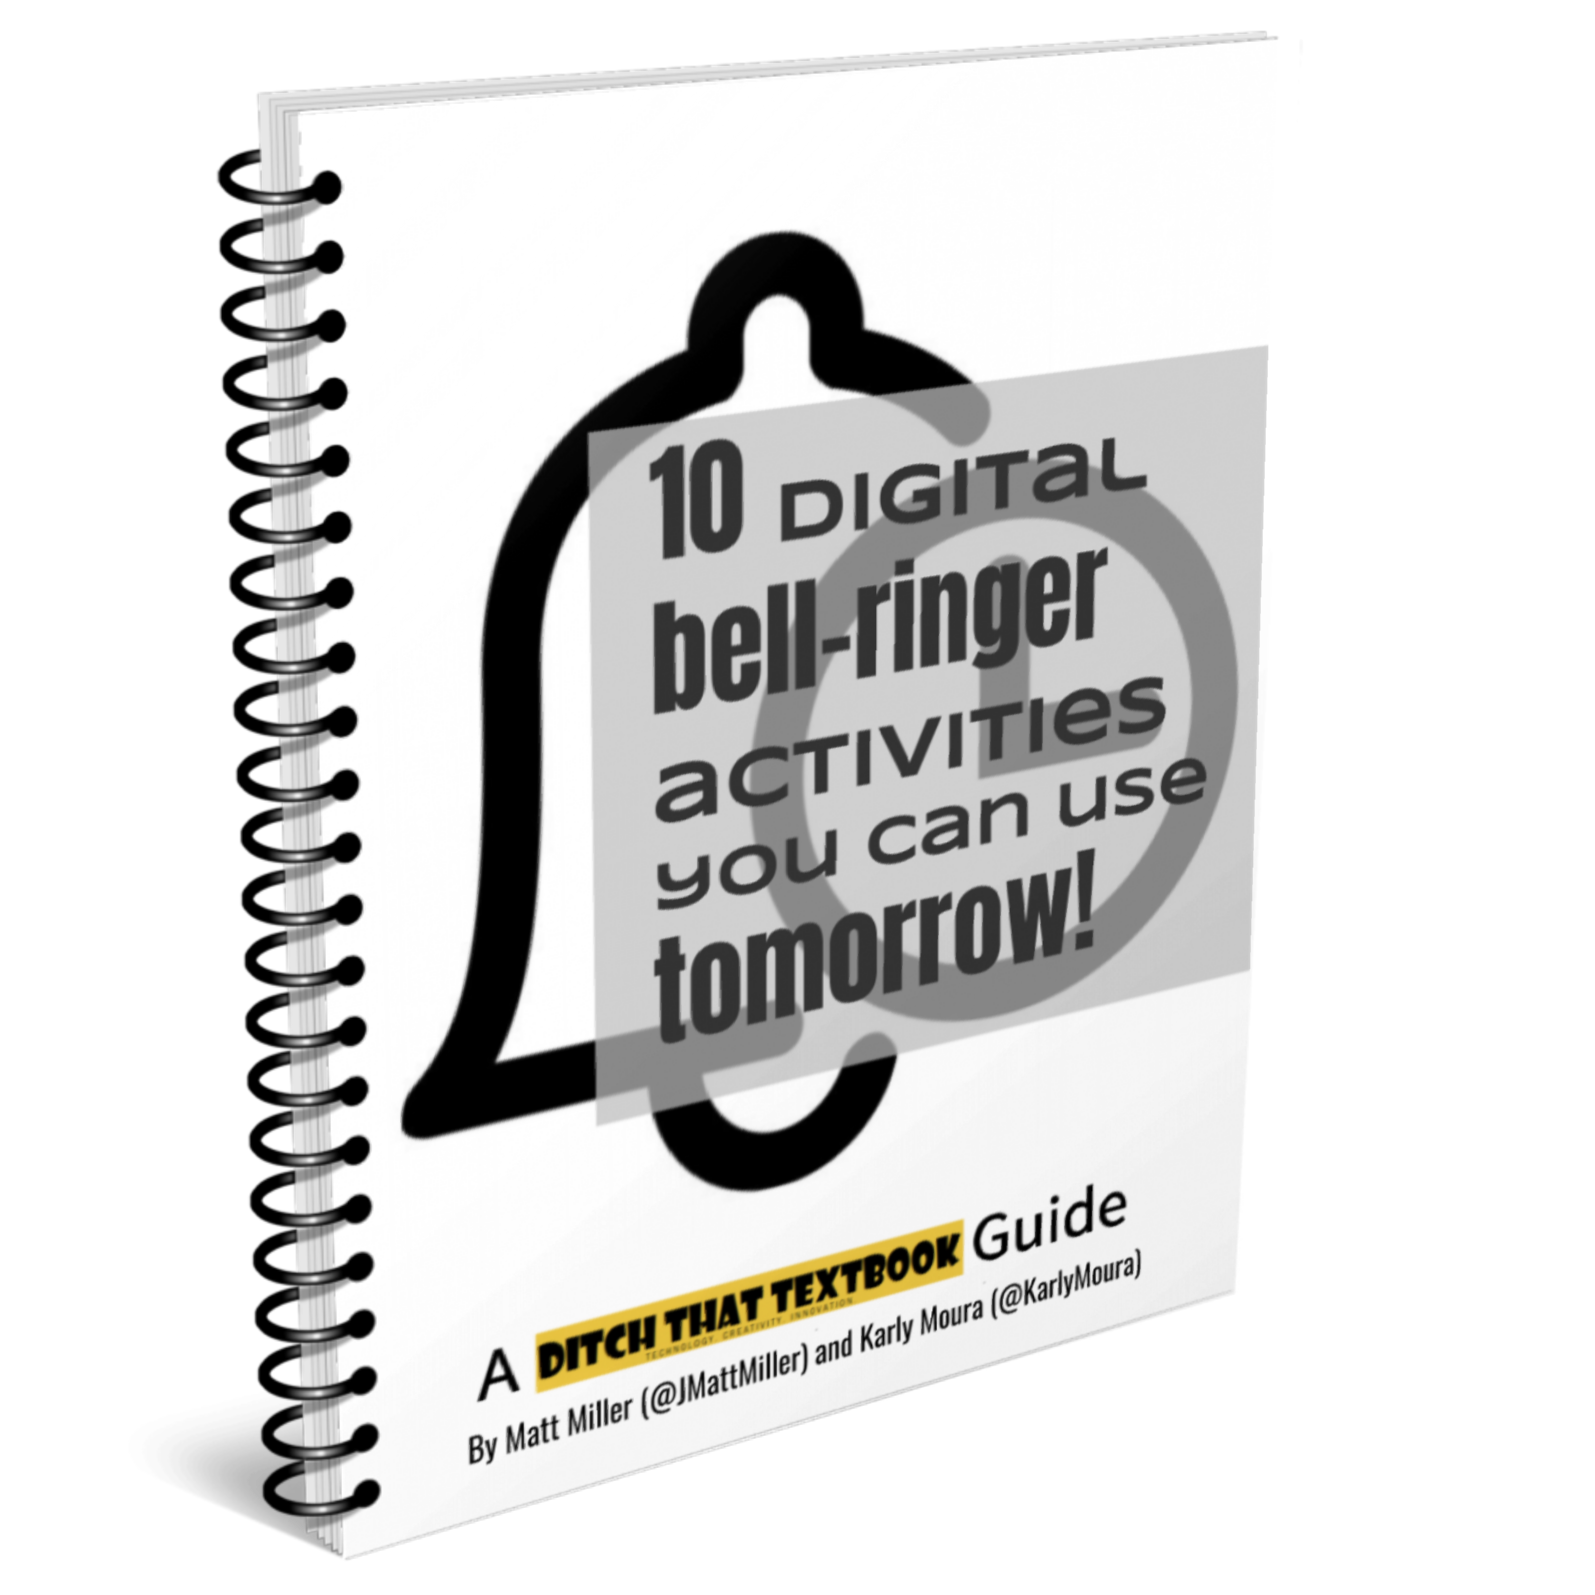 10 digital bellringers ebook